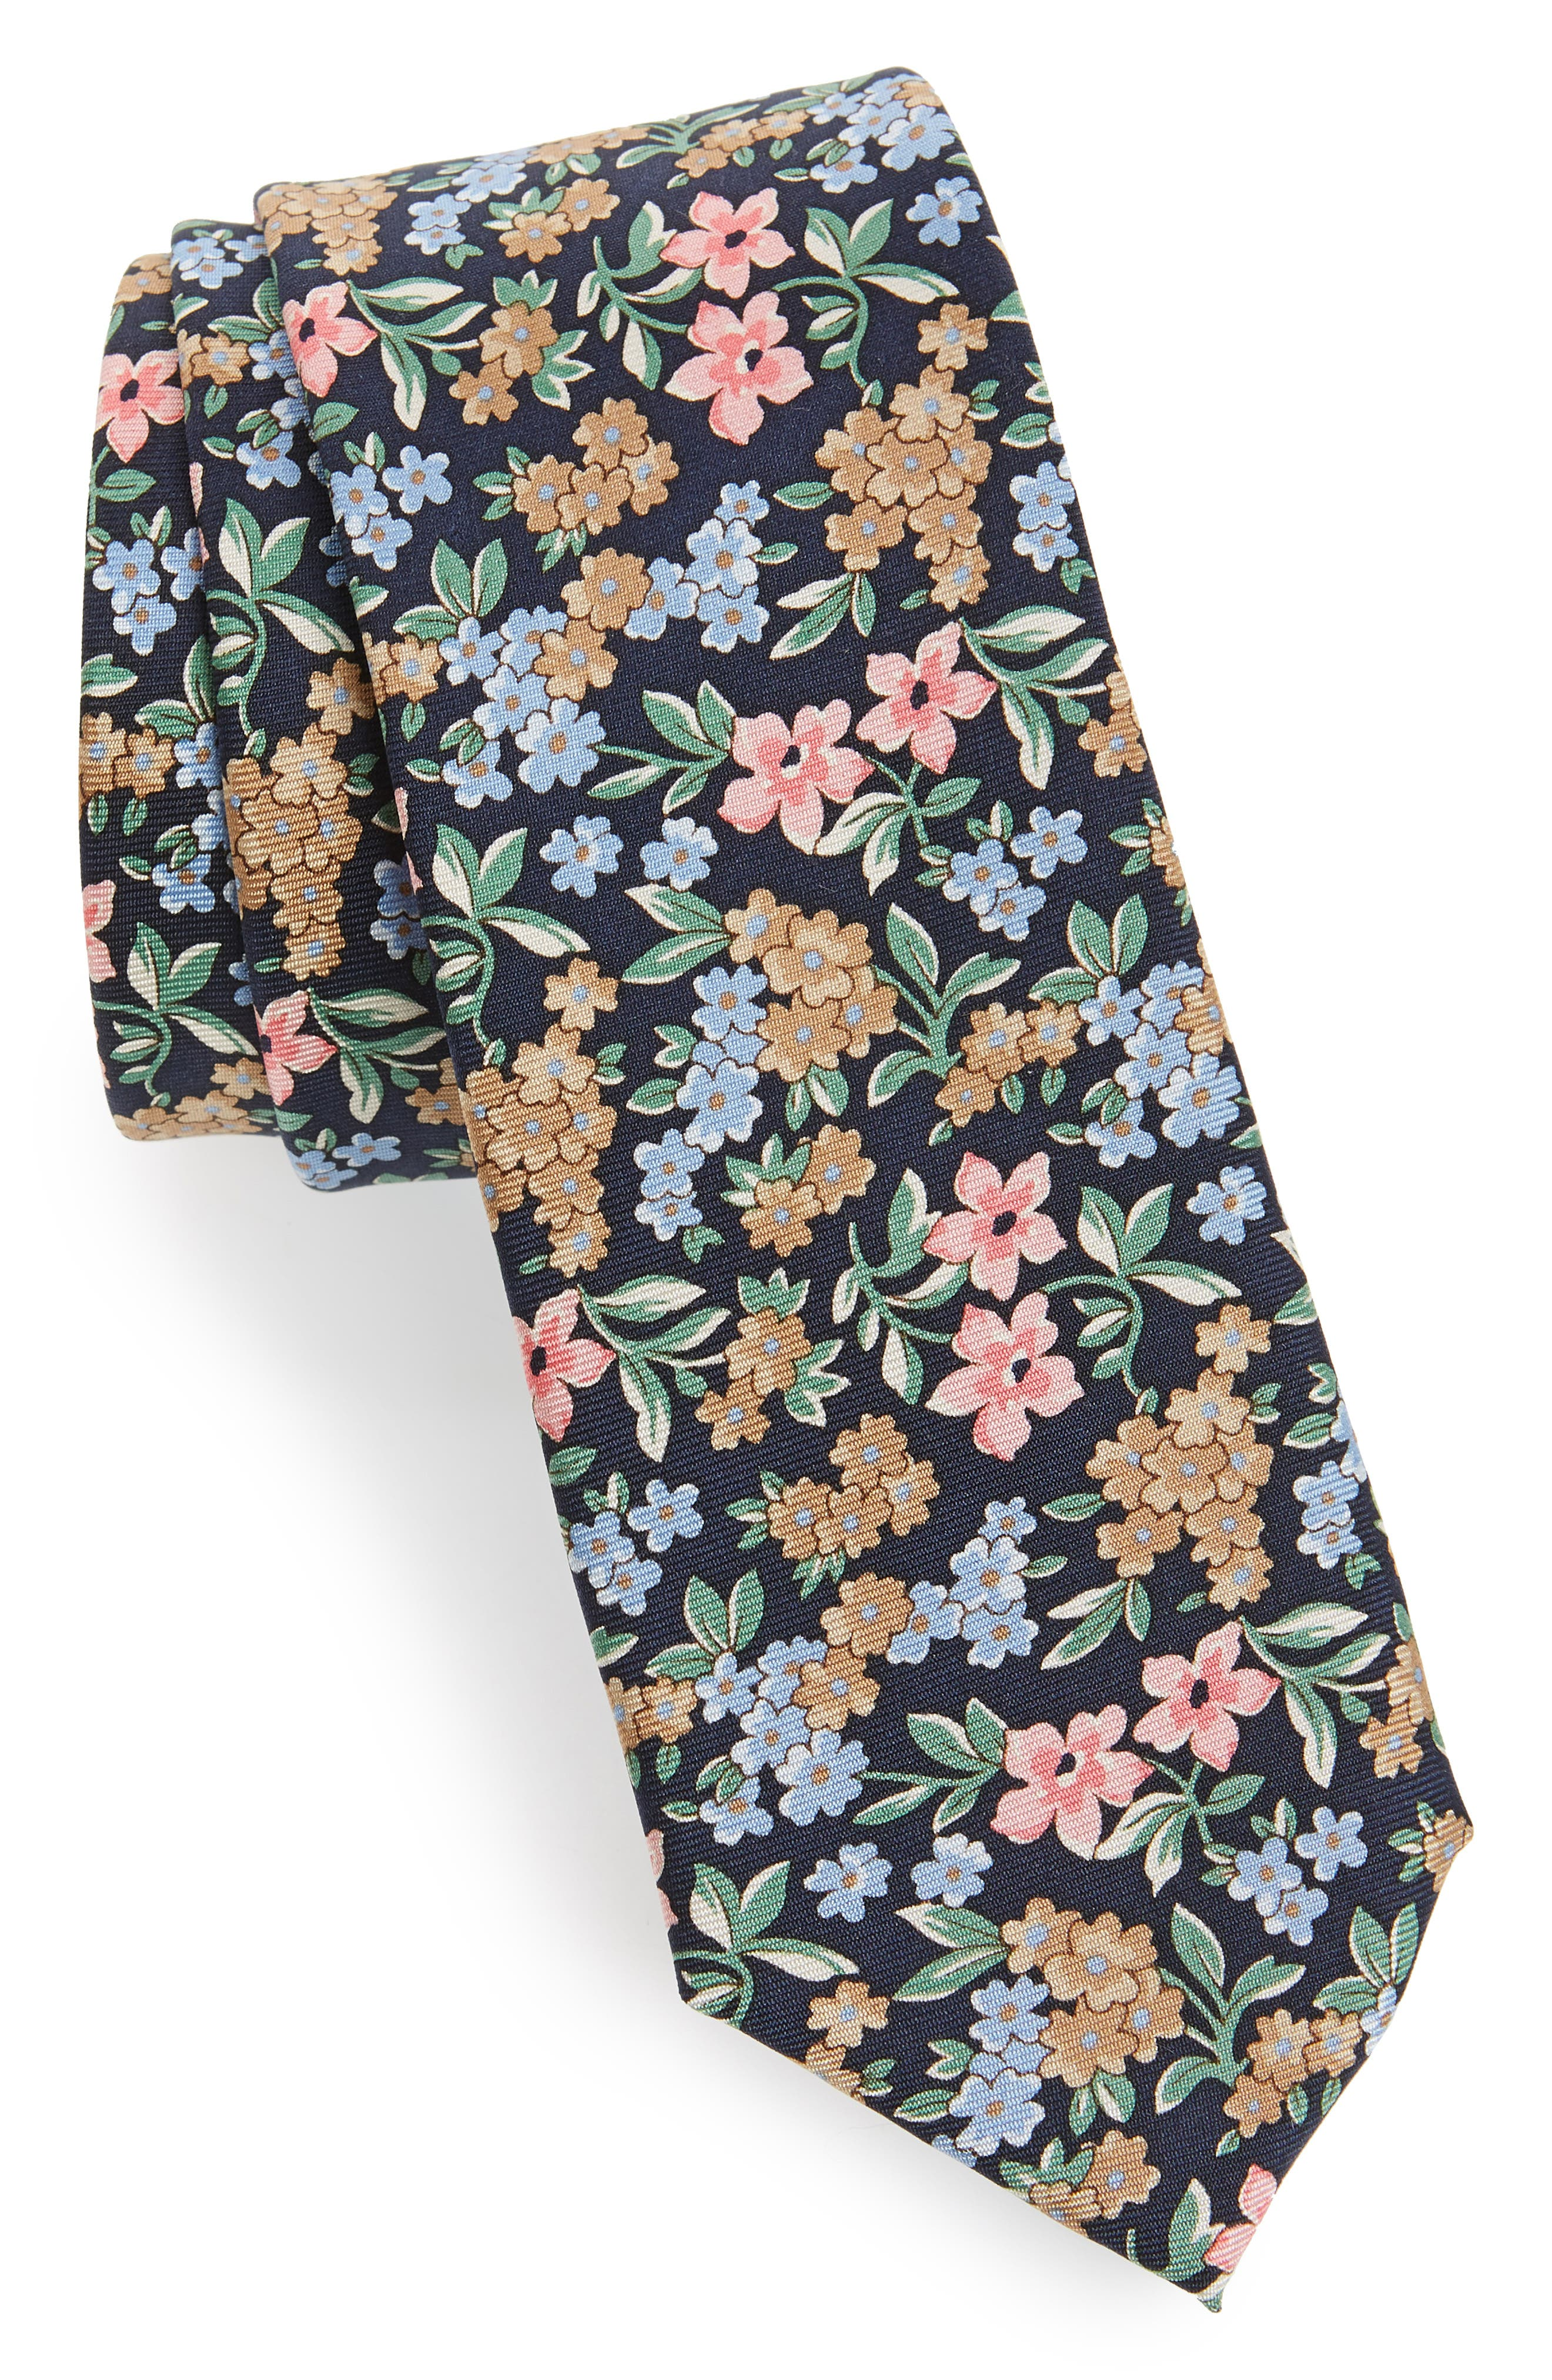 Cassidy Floral Silk Skinny Tie,                             Main thumbnail 1, color,                             410